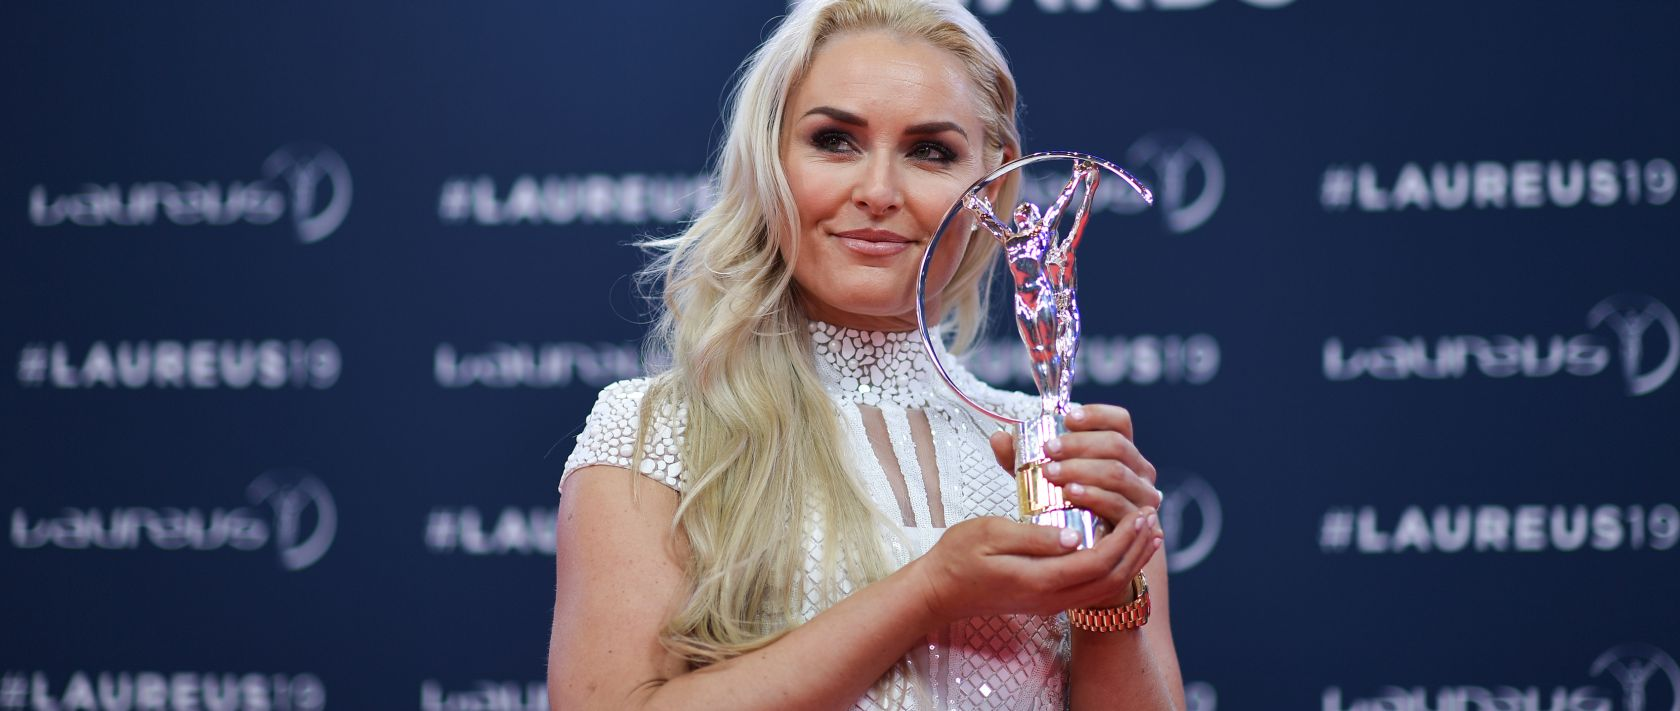 Mercedes-Benz: Laureus World Sports Awards. Skiing great Lindsey Vonn's incredible career was recognised with the Laureus Spirit of Sport Award.